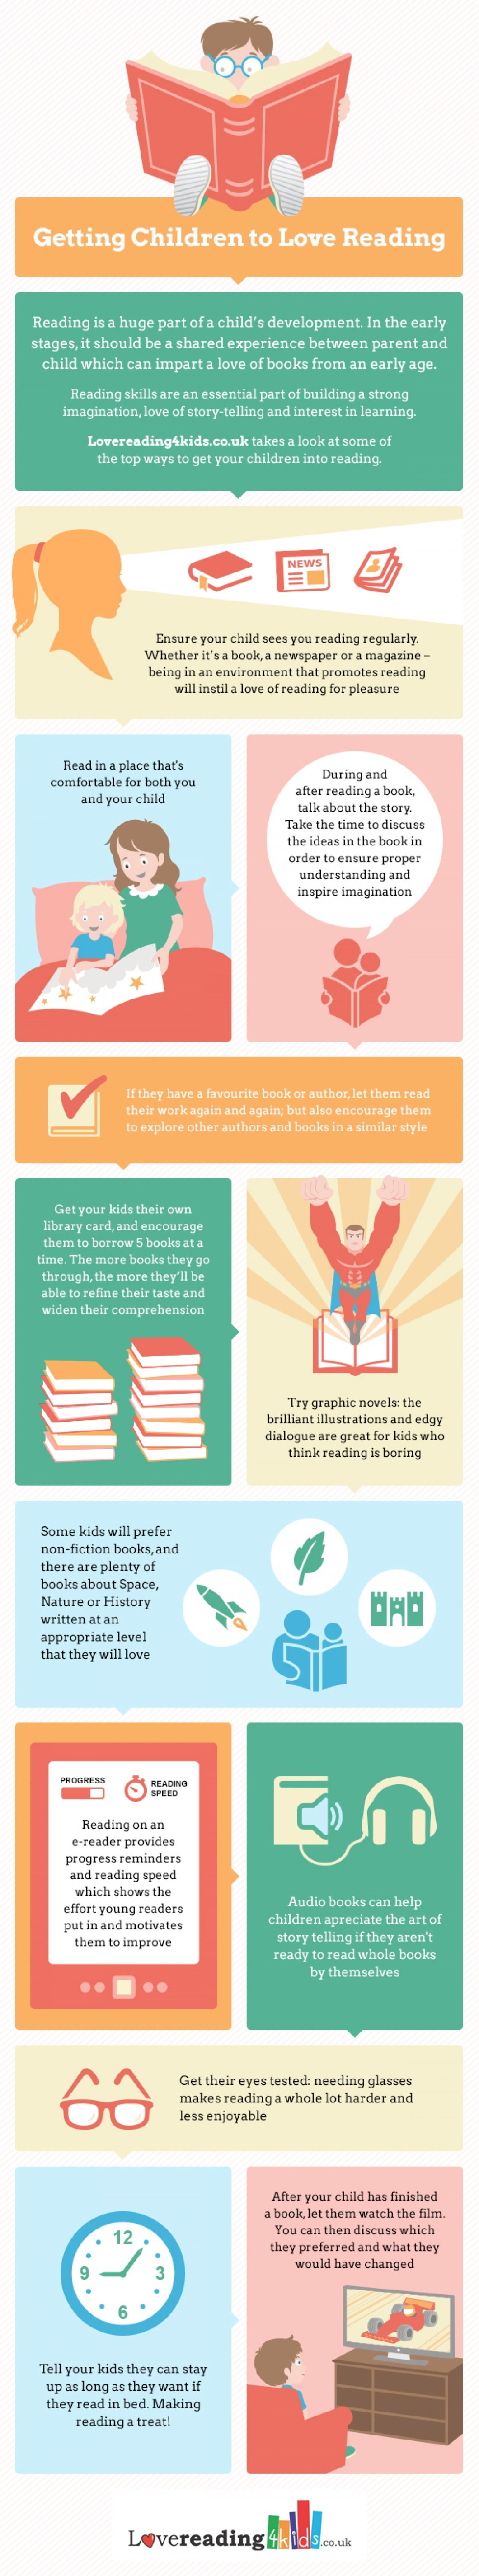 How to Get Your Kids to Love Reading - Infographic